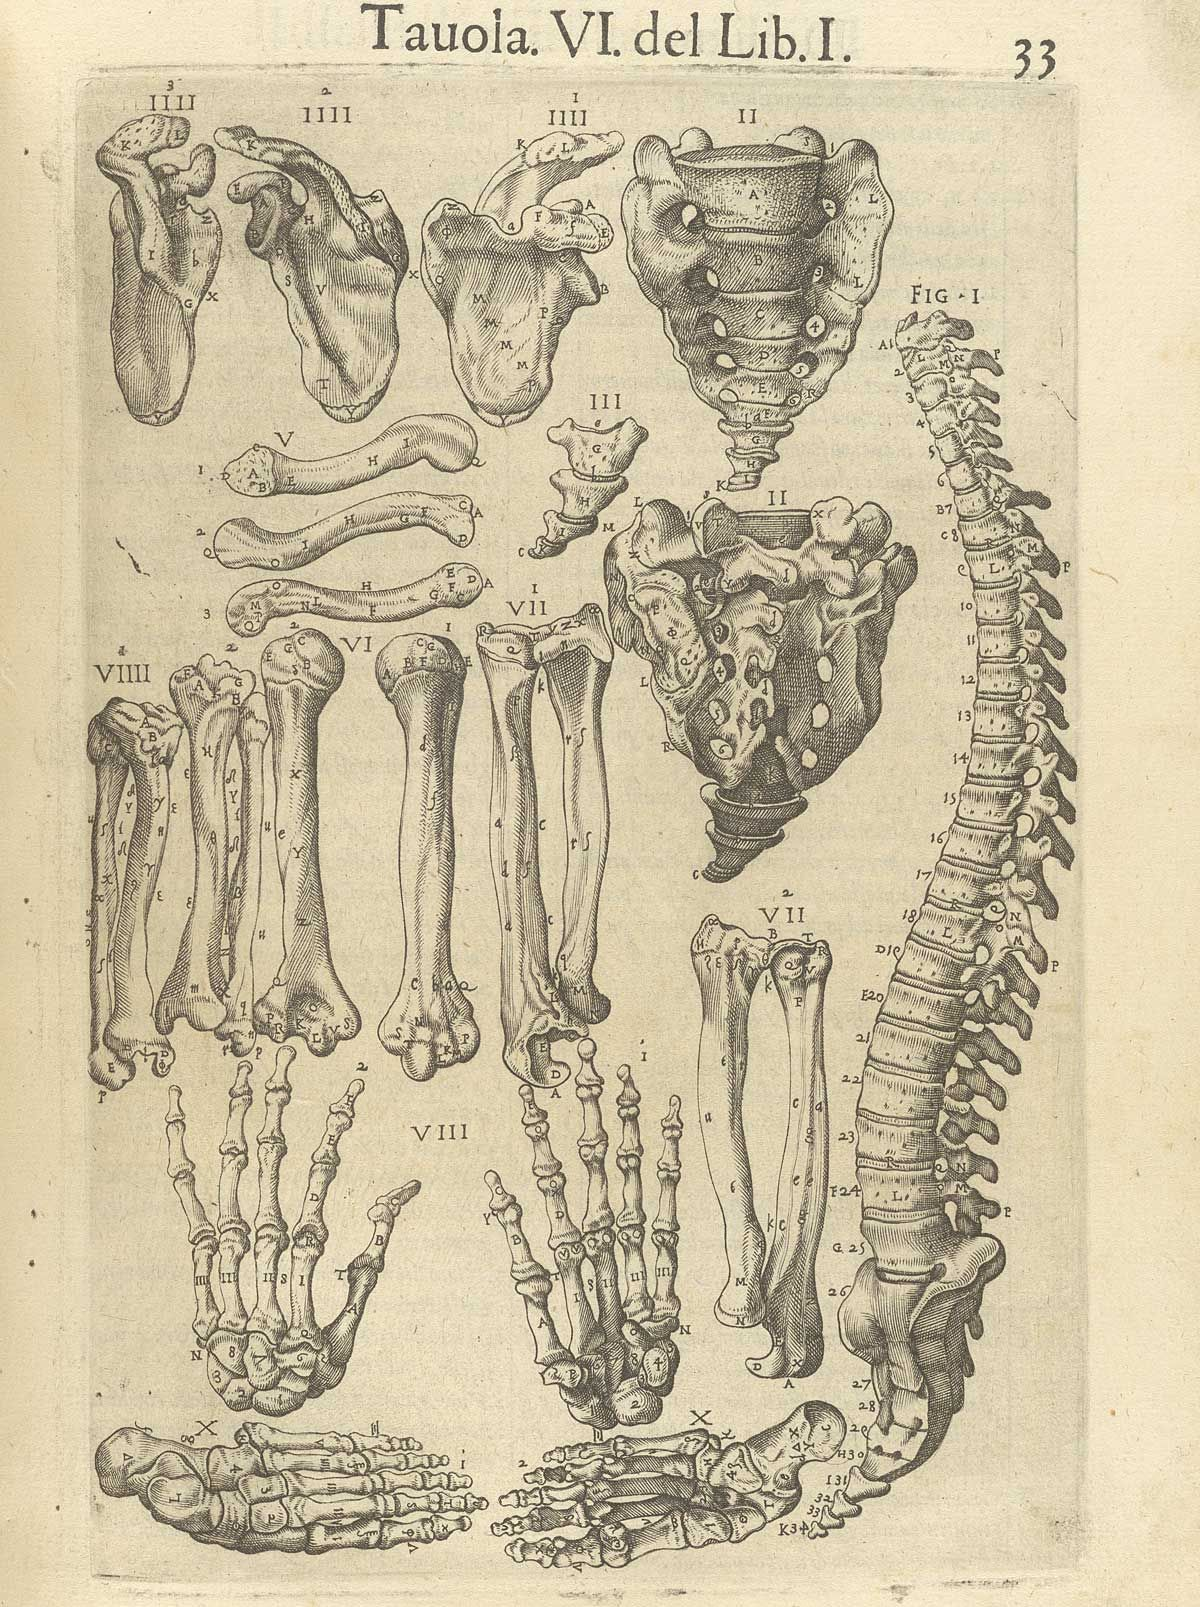 Pin by National Library of Medicine - History on Historical Anatomy ...